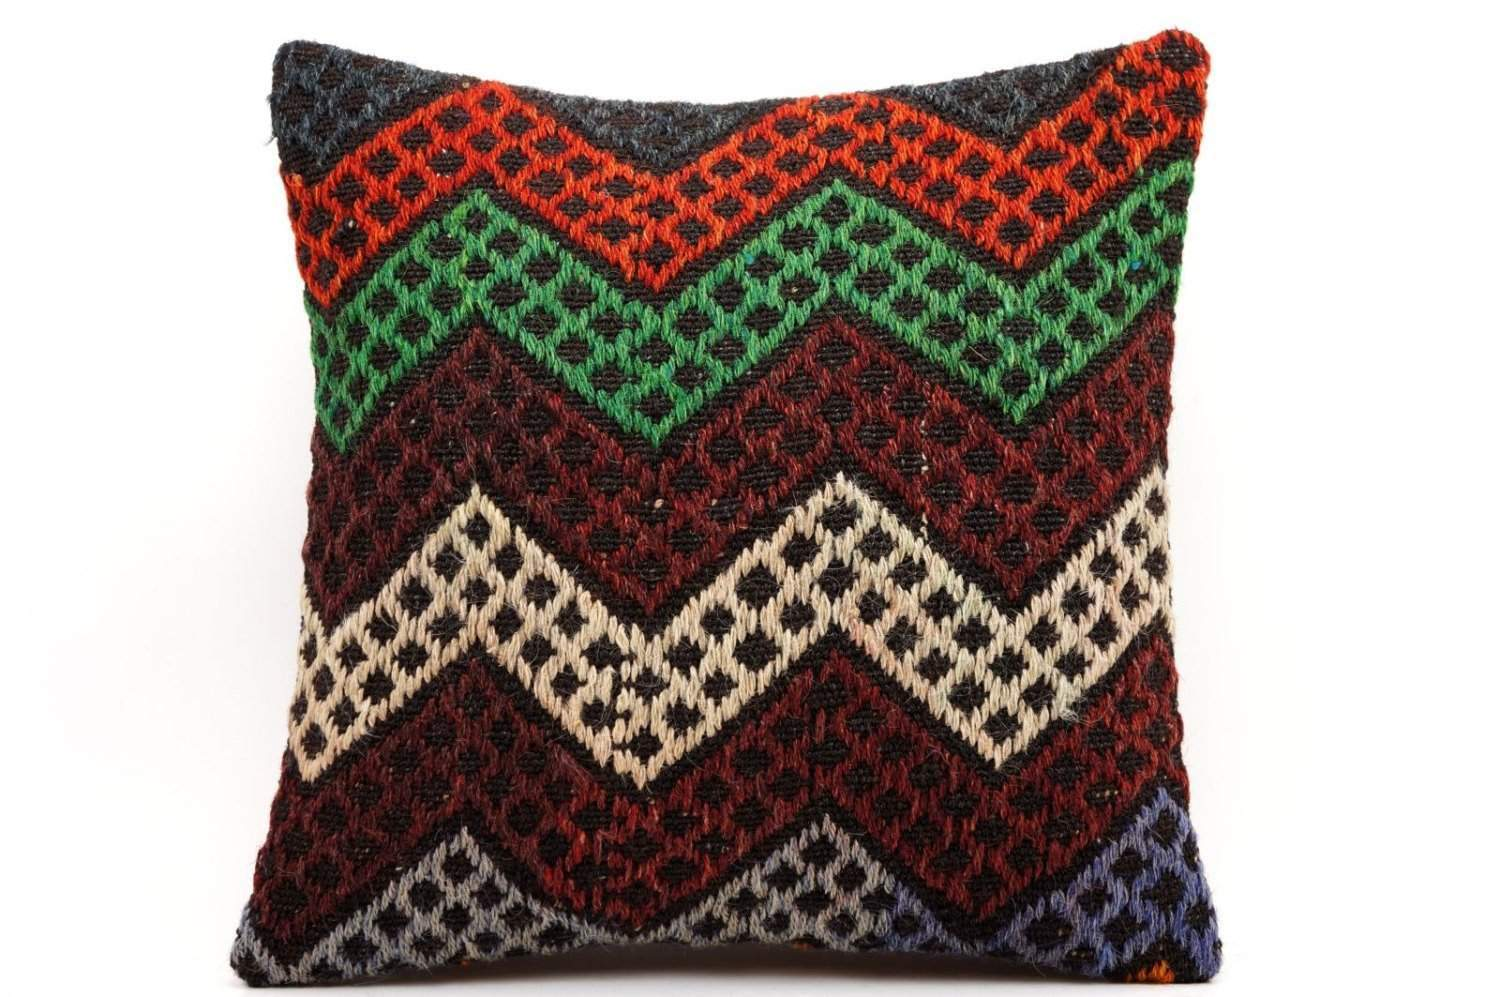 16x16 Vintage Hand Woven Kilim Pillow 480,green,blue,beige,black,gray,orange,chevron